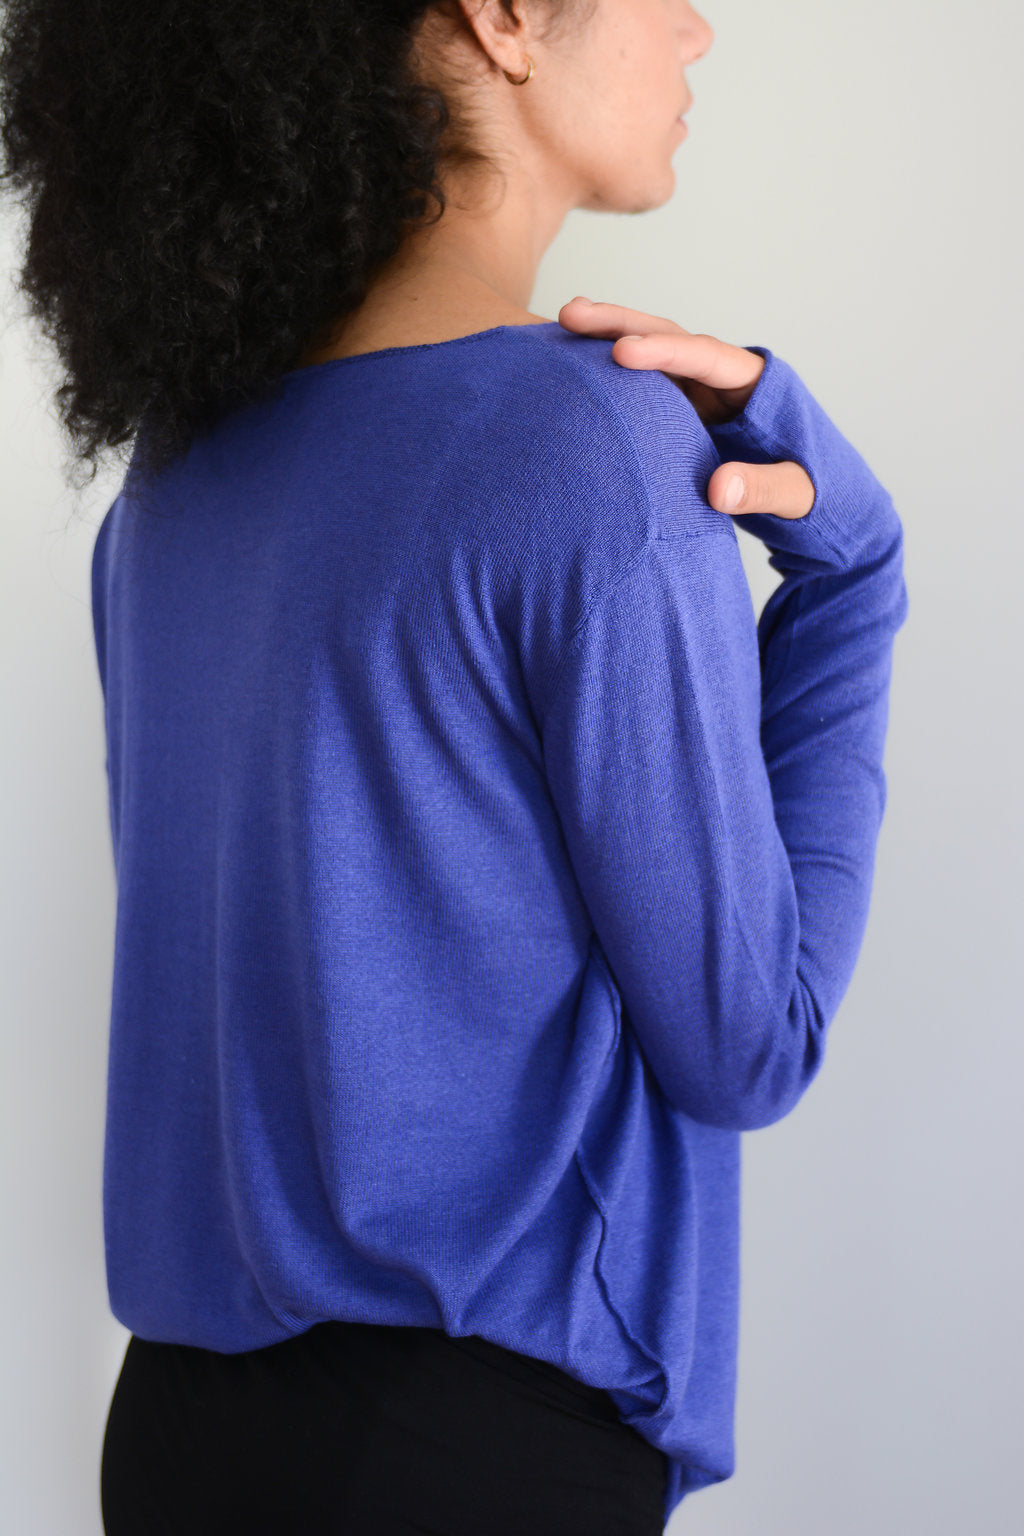 Blue silk cashmere sweater